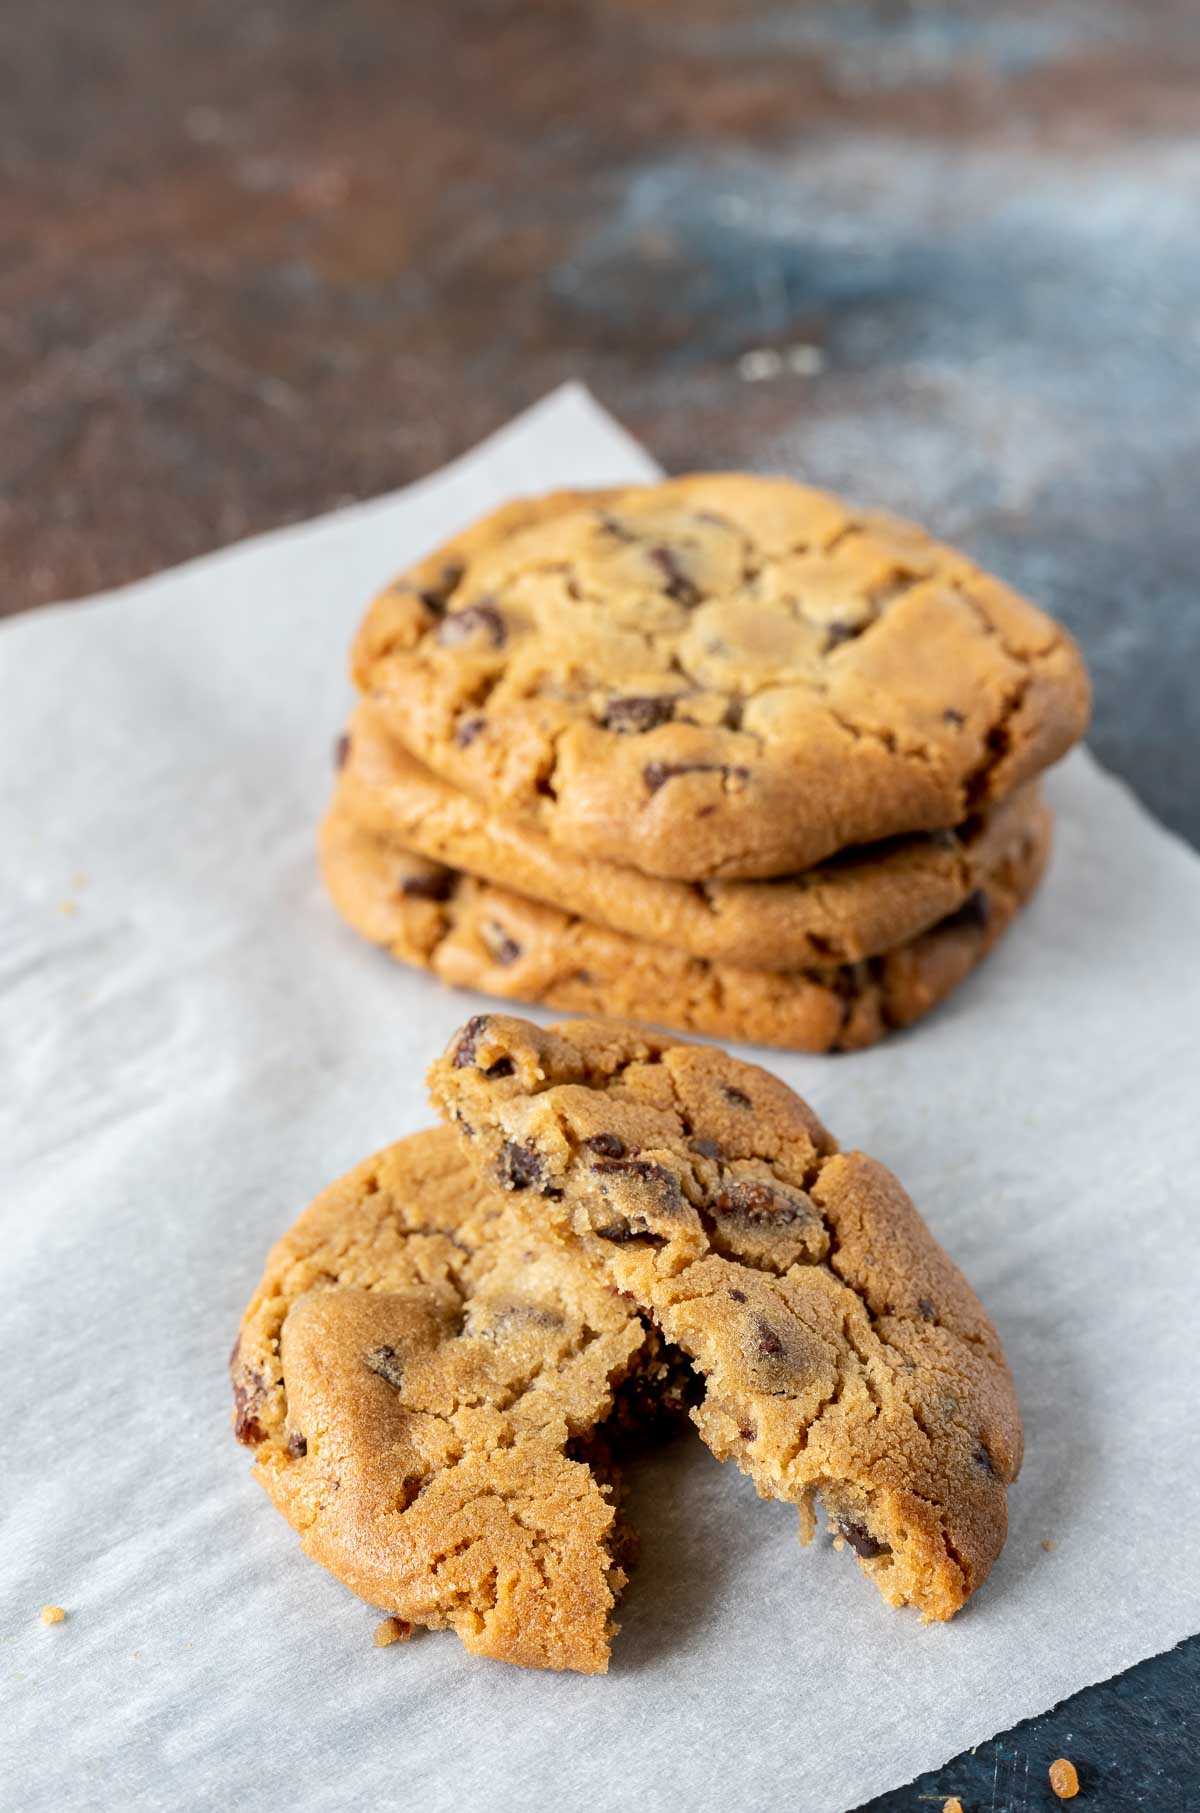 baked chocolate chip cookies on parchment paper